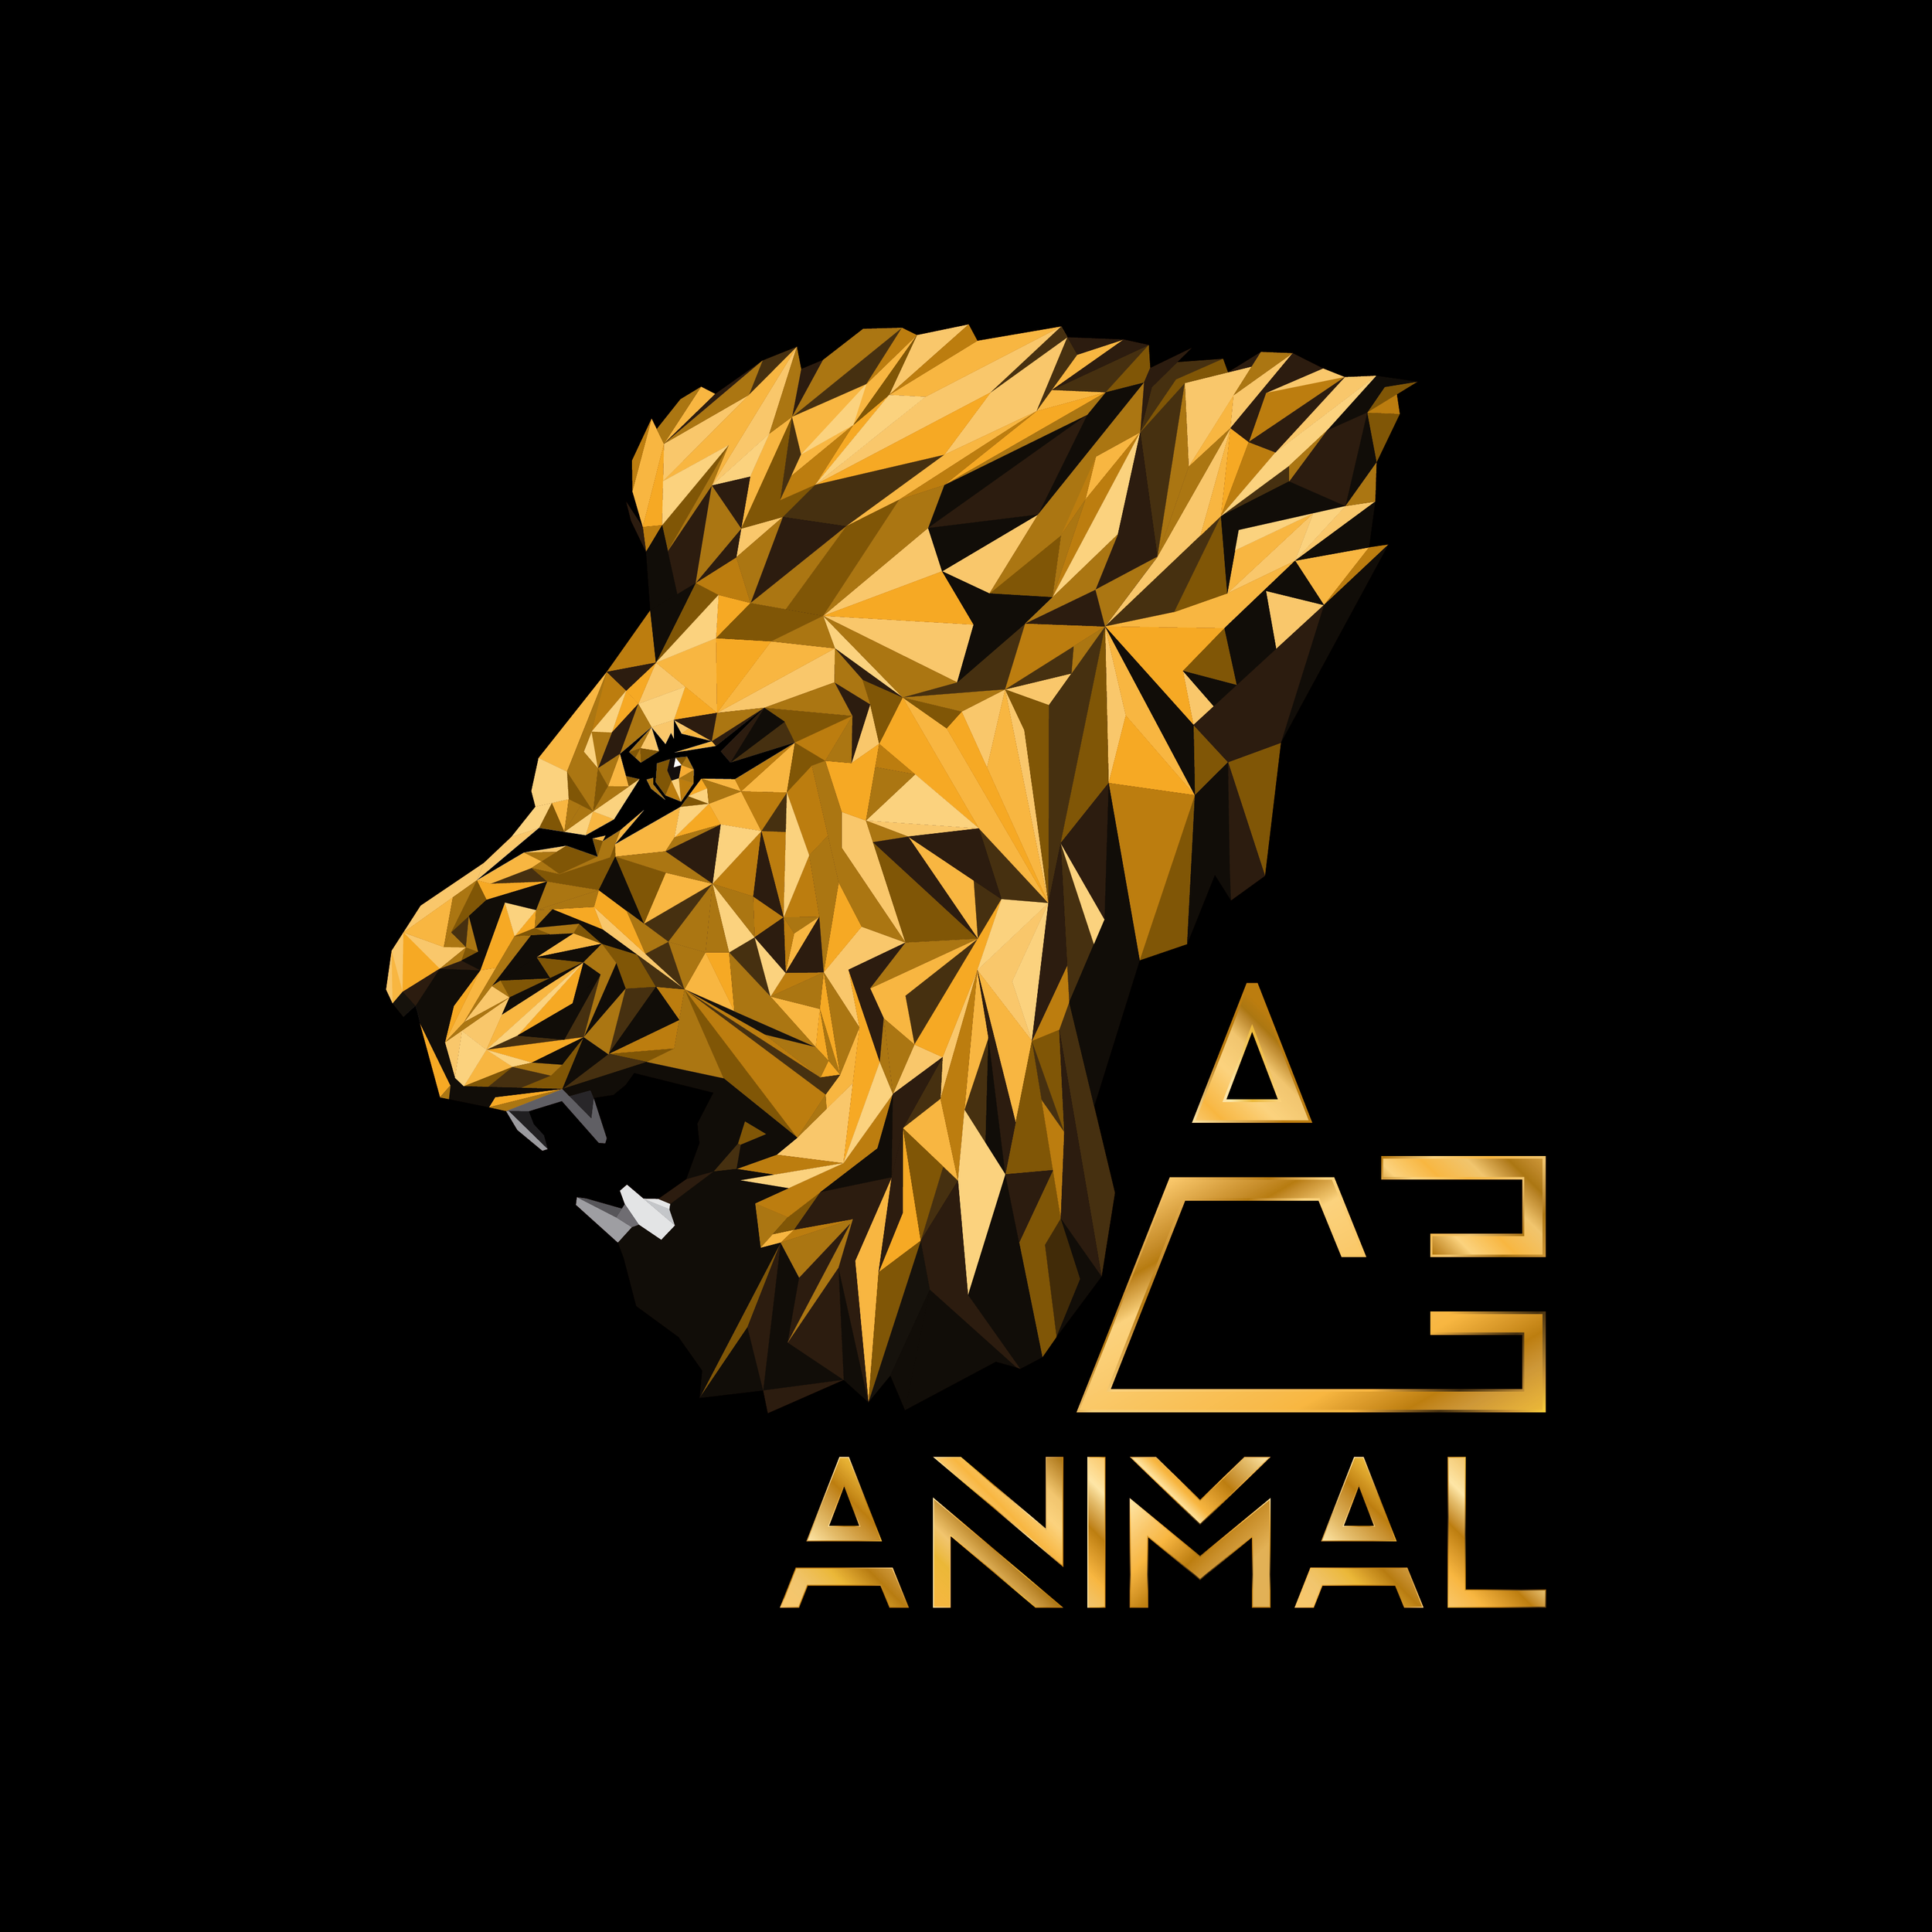 AE_Animal_logo_AF_black.png